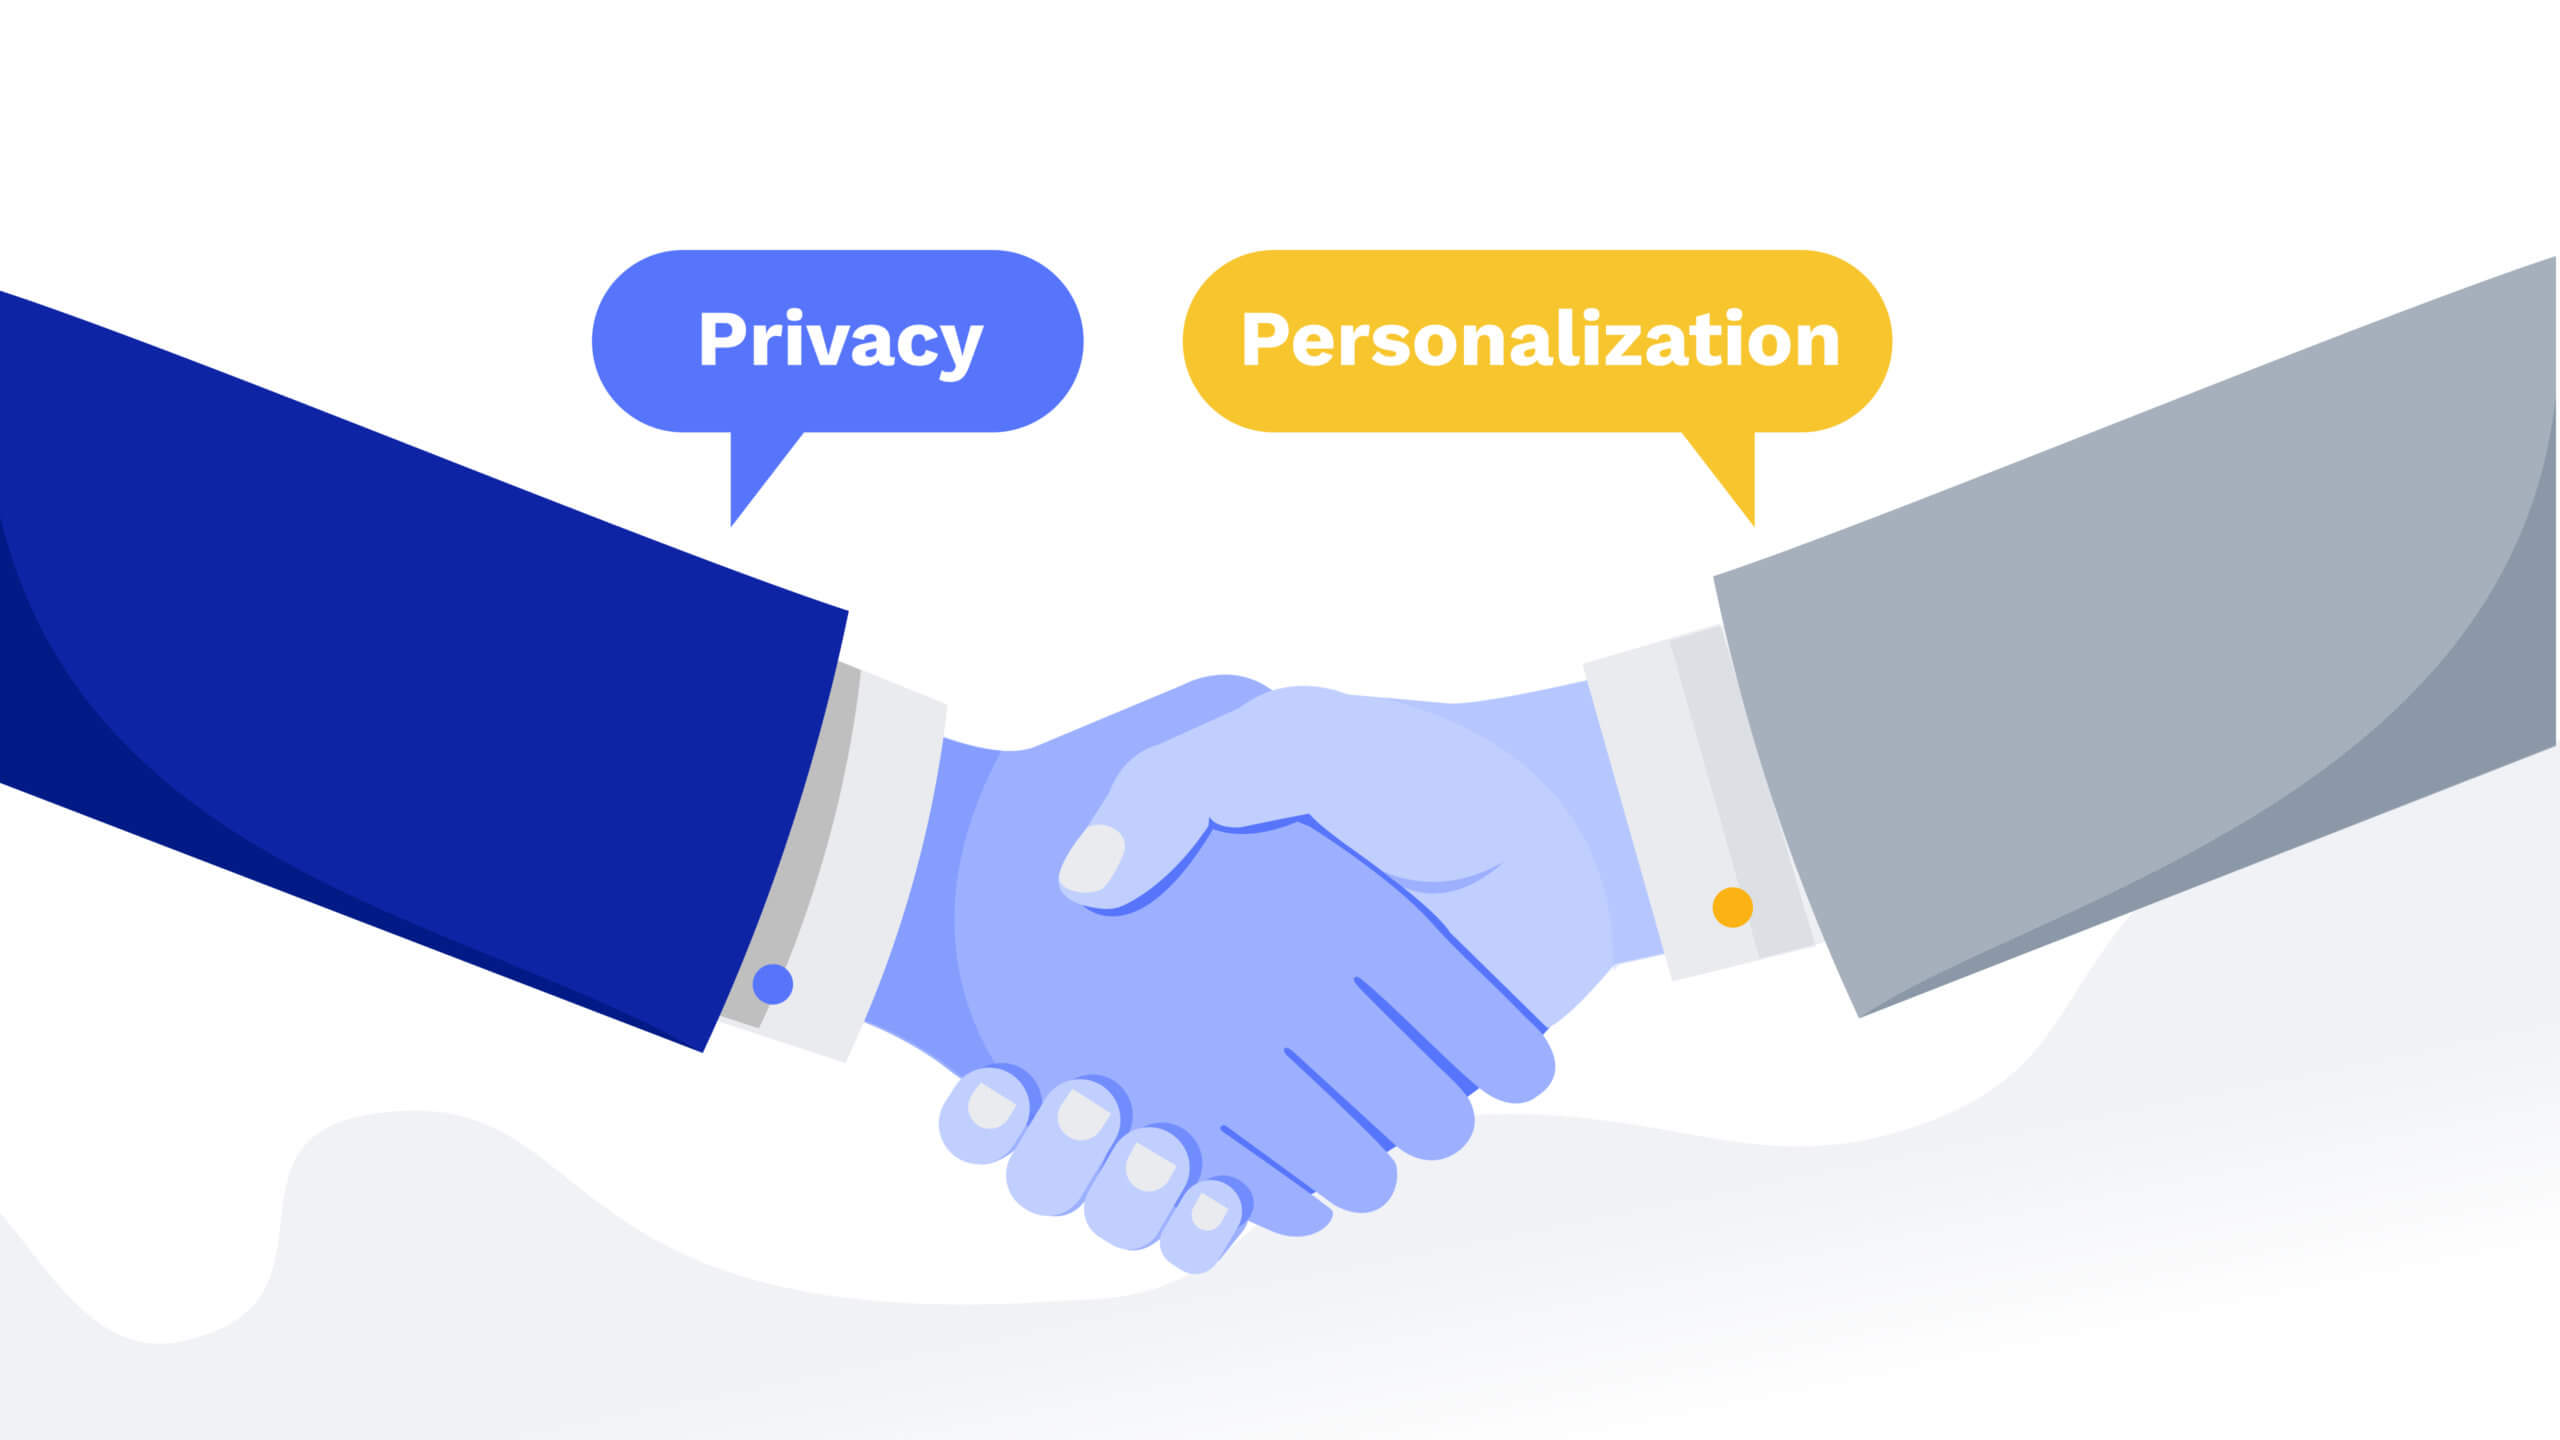 Personalization and Privacy Co-Existing